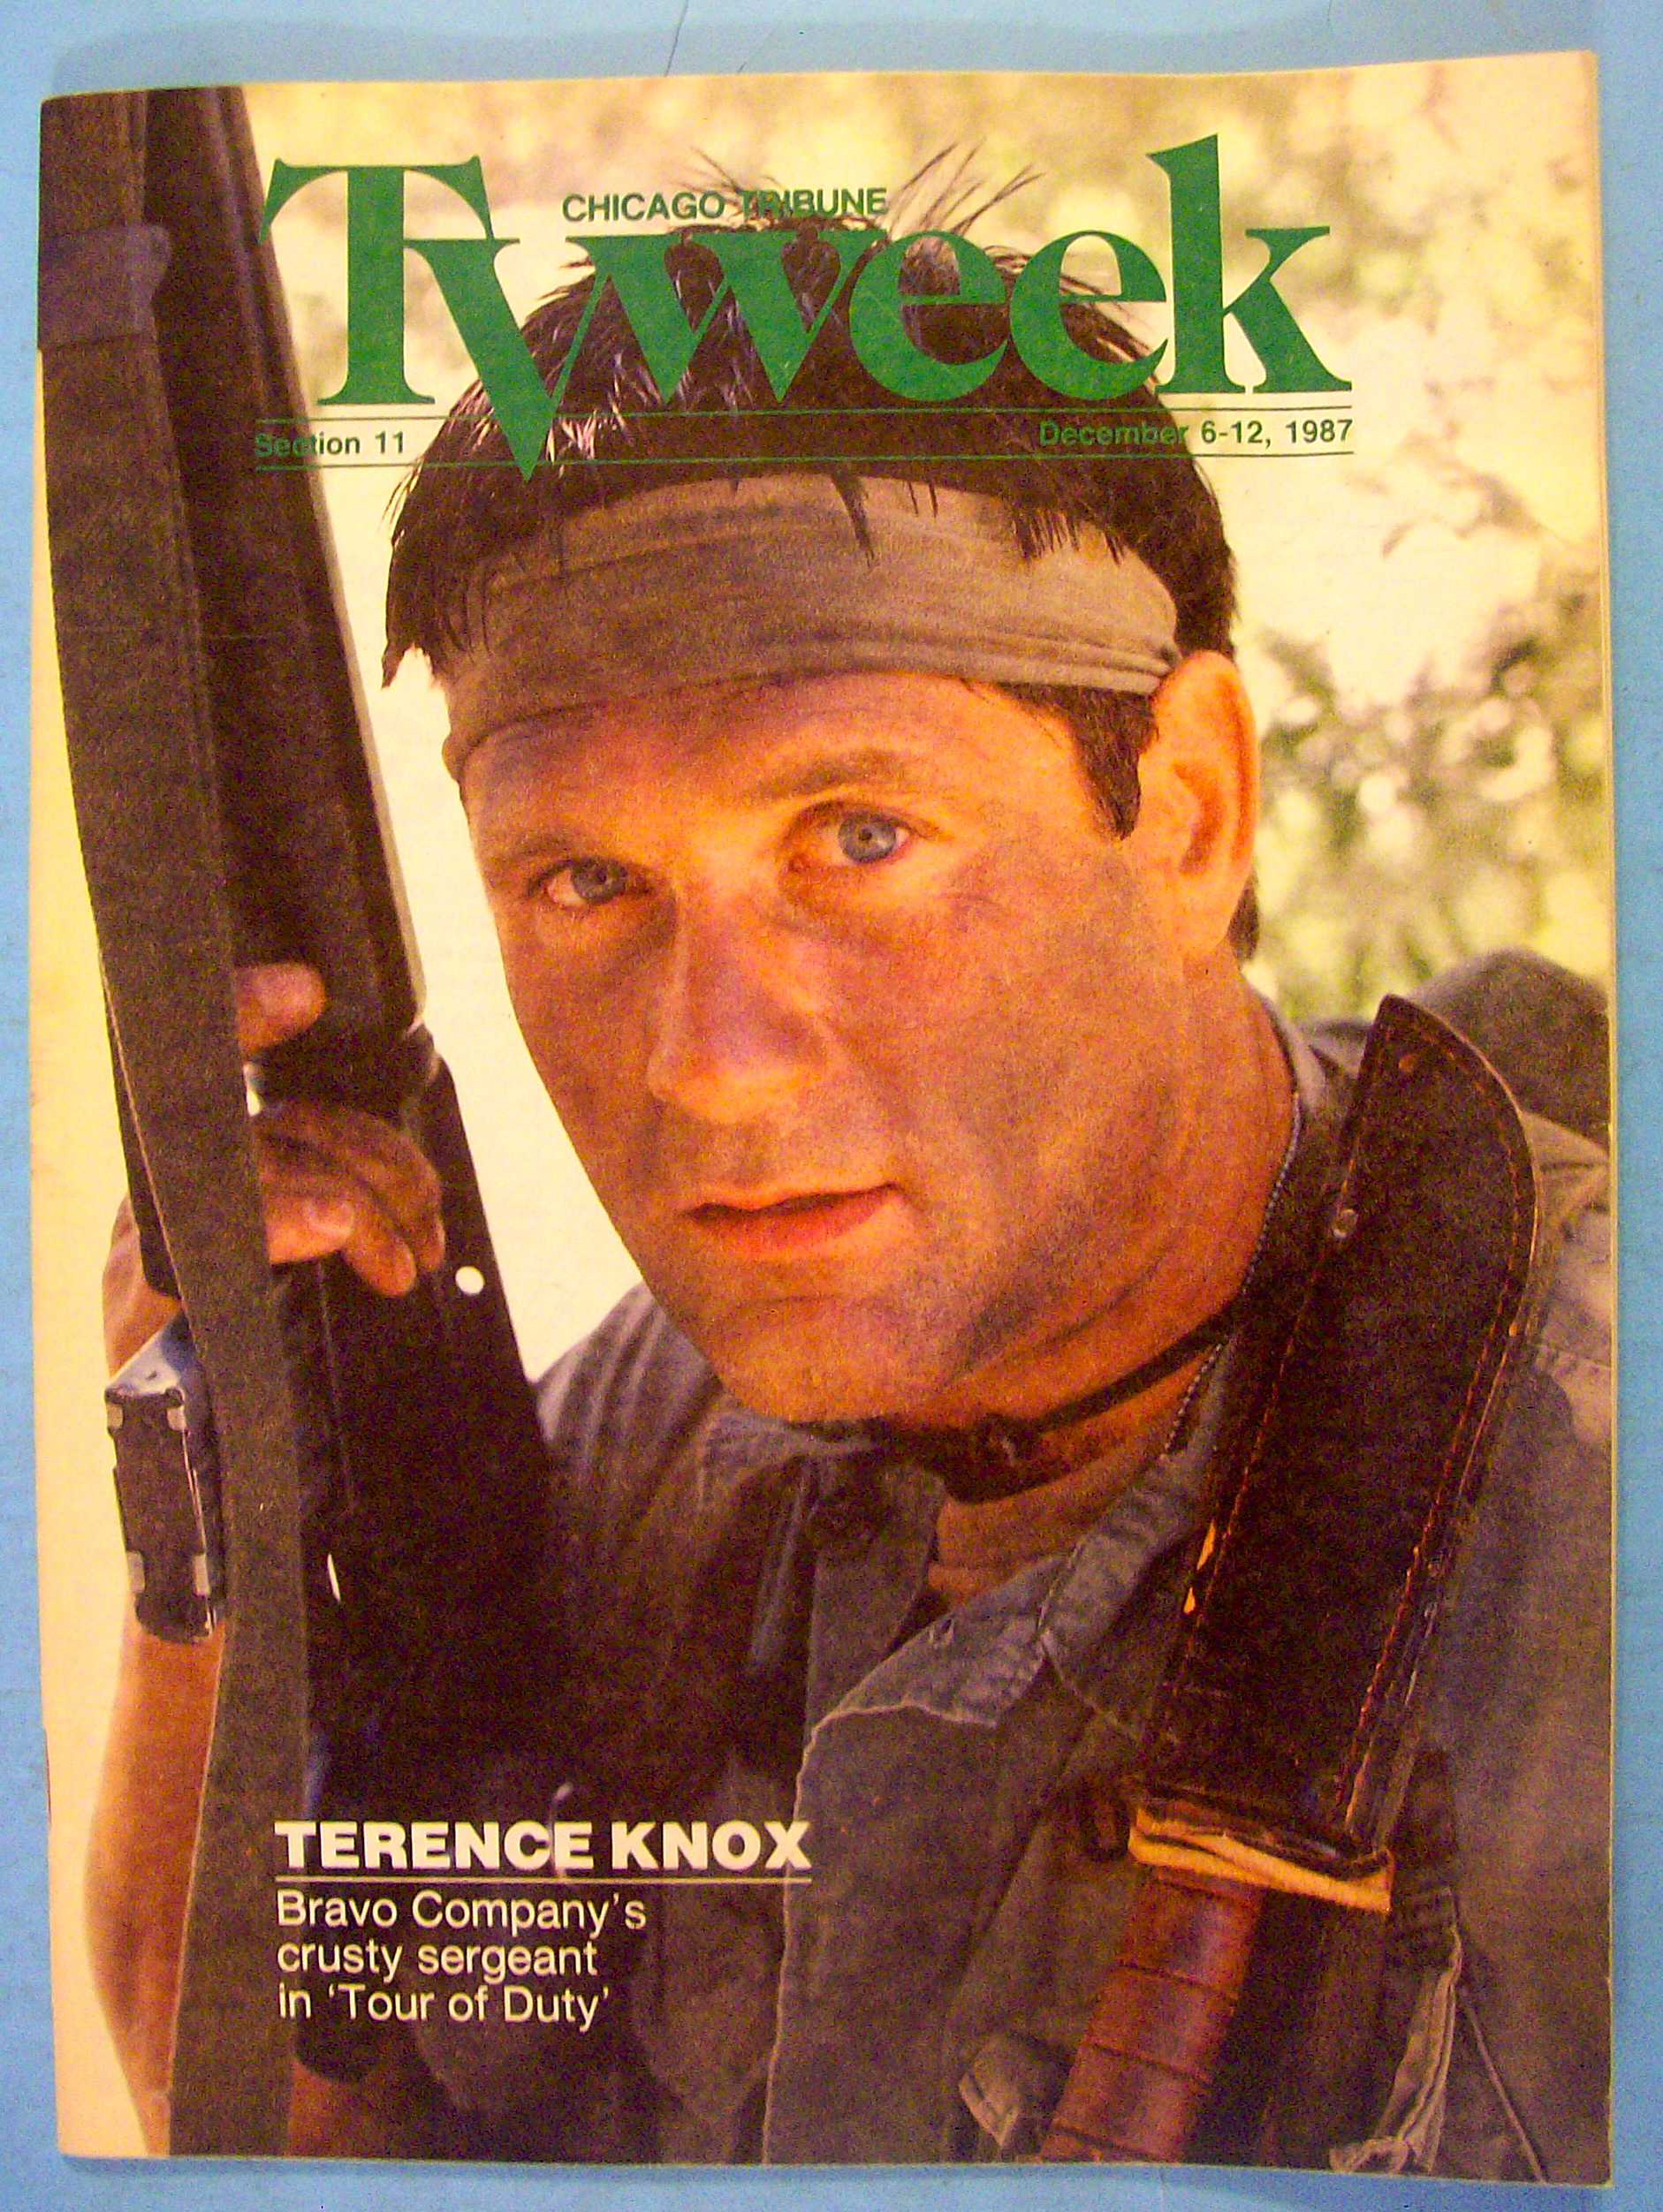 terence knox facebookterence knox actor, terence knox married, terence knox movies, terence knox 2016, terence knox imdb, terence knox wife, terence knox bio, terence knox interview, terence knox net worth, terence knox, terence knox shirtless, terence knox vietnam, terence knox 2014, terence knox peliculas, terence knox website, terence knox the hunters, terence knox dukes of hazzard, terence knox gay, terence knox facebook, terence knox biography